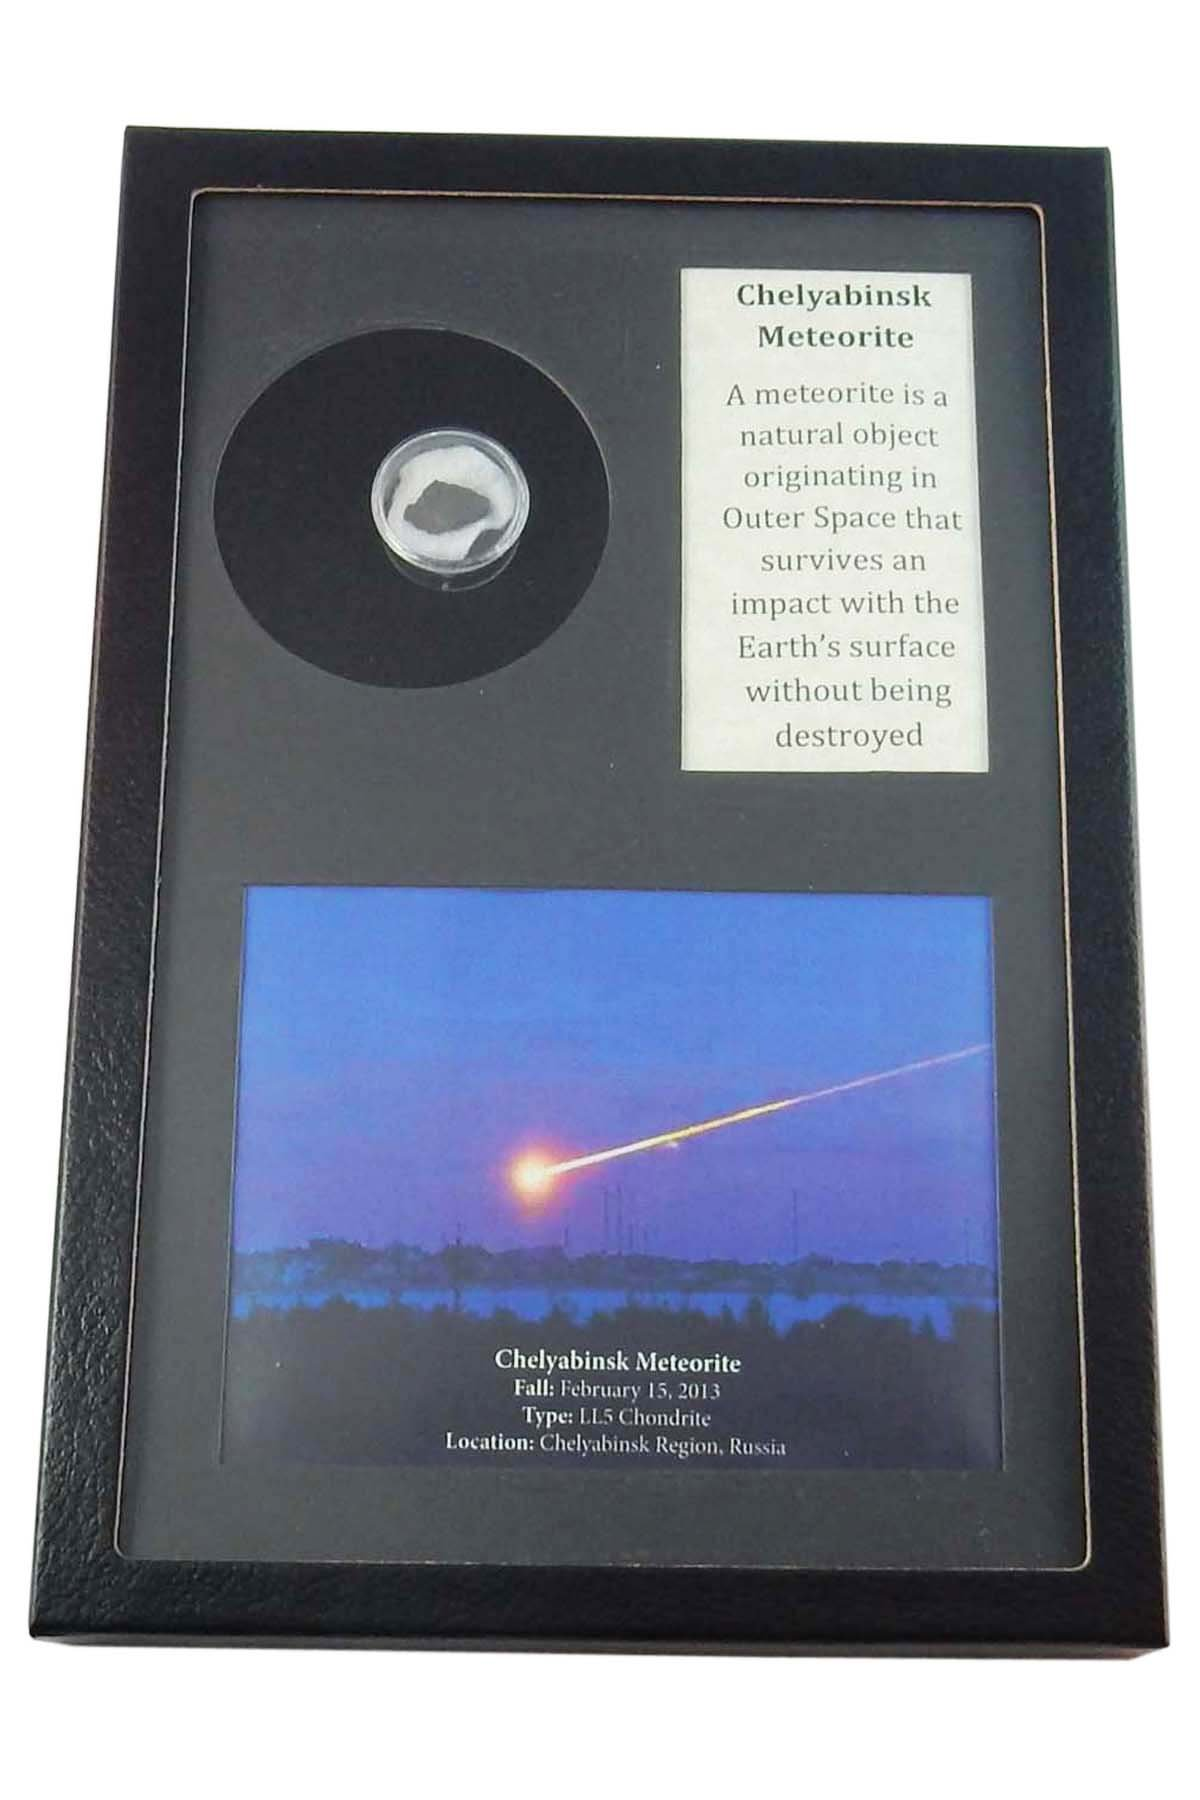 Authentic Meteorite Piece From Chelyabinsk in Round Acrylic Holder within a RIker Display Frame with Beverly Oaks Excusive Certificate of Authenticity